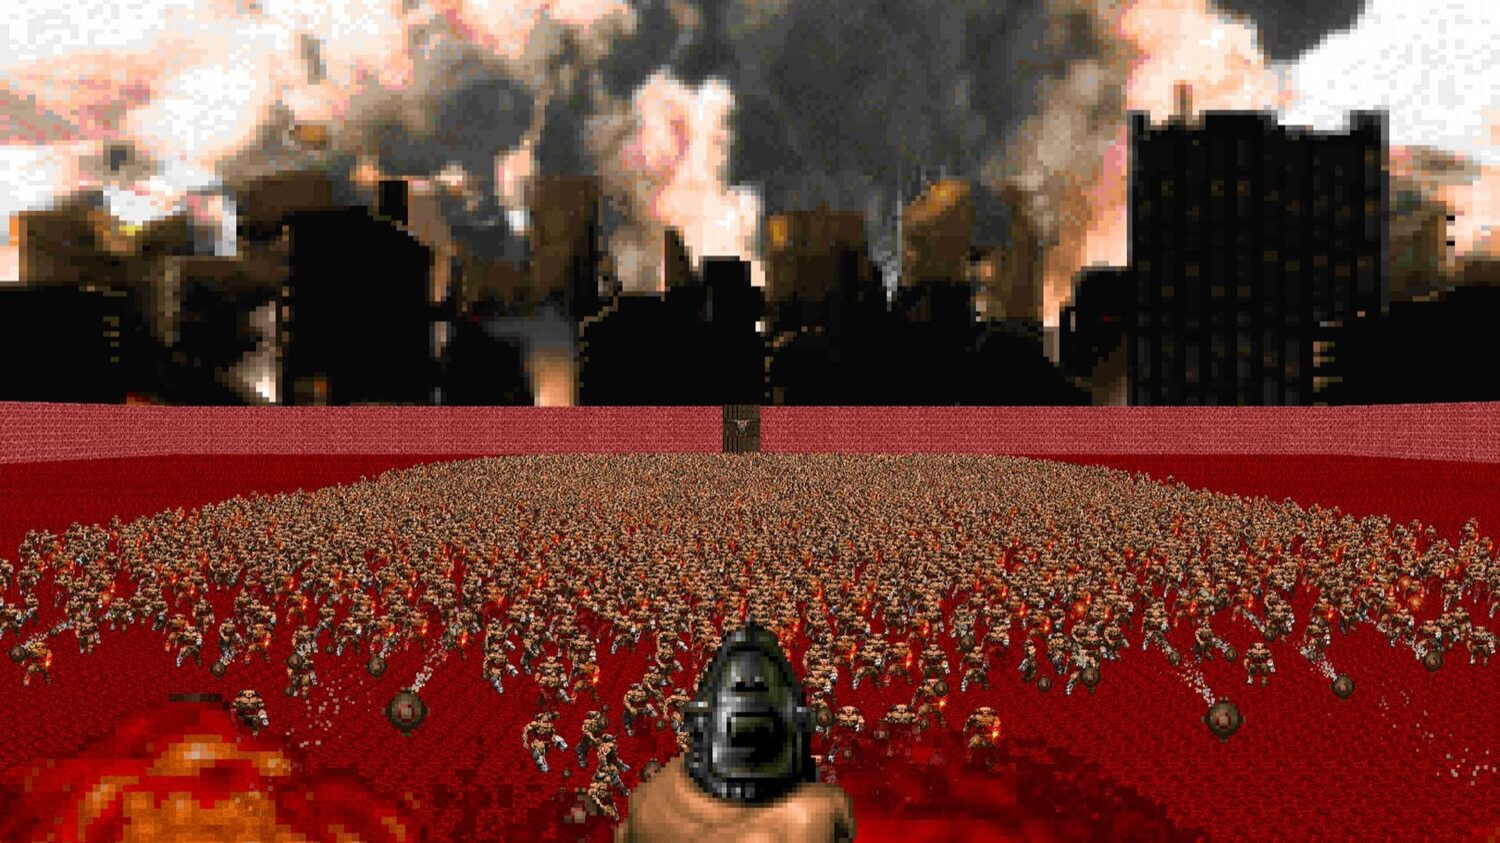 Artificial intelligence has created levels for Doom not worse people